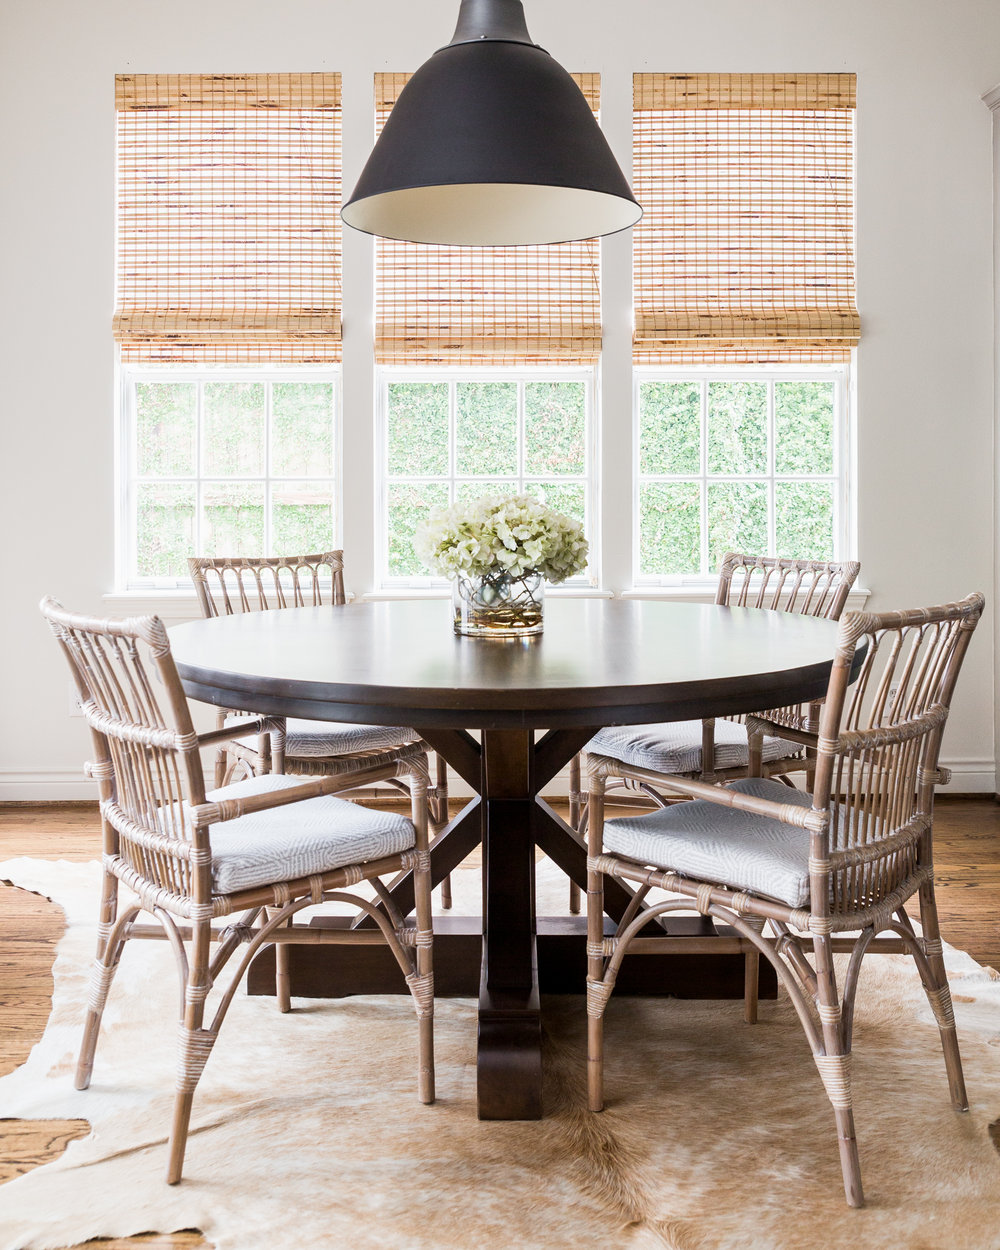 Farmhouse Dining Table with cowhide rug and rattan breakfast chairs